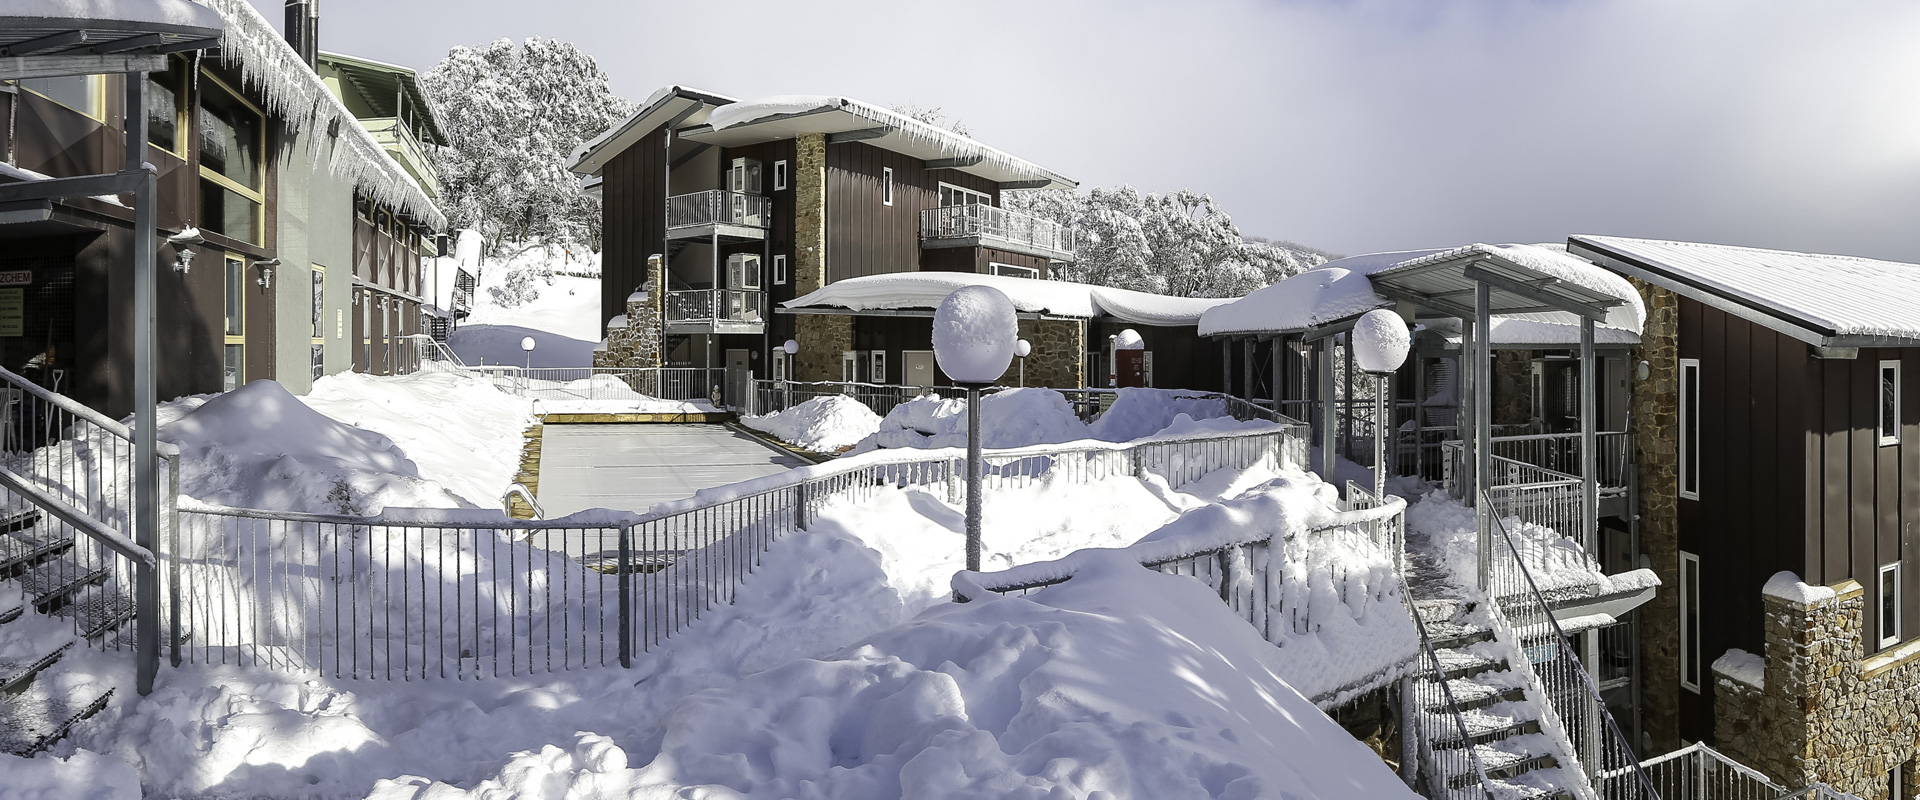 Ropers Apartments Falls Creek Victoria